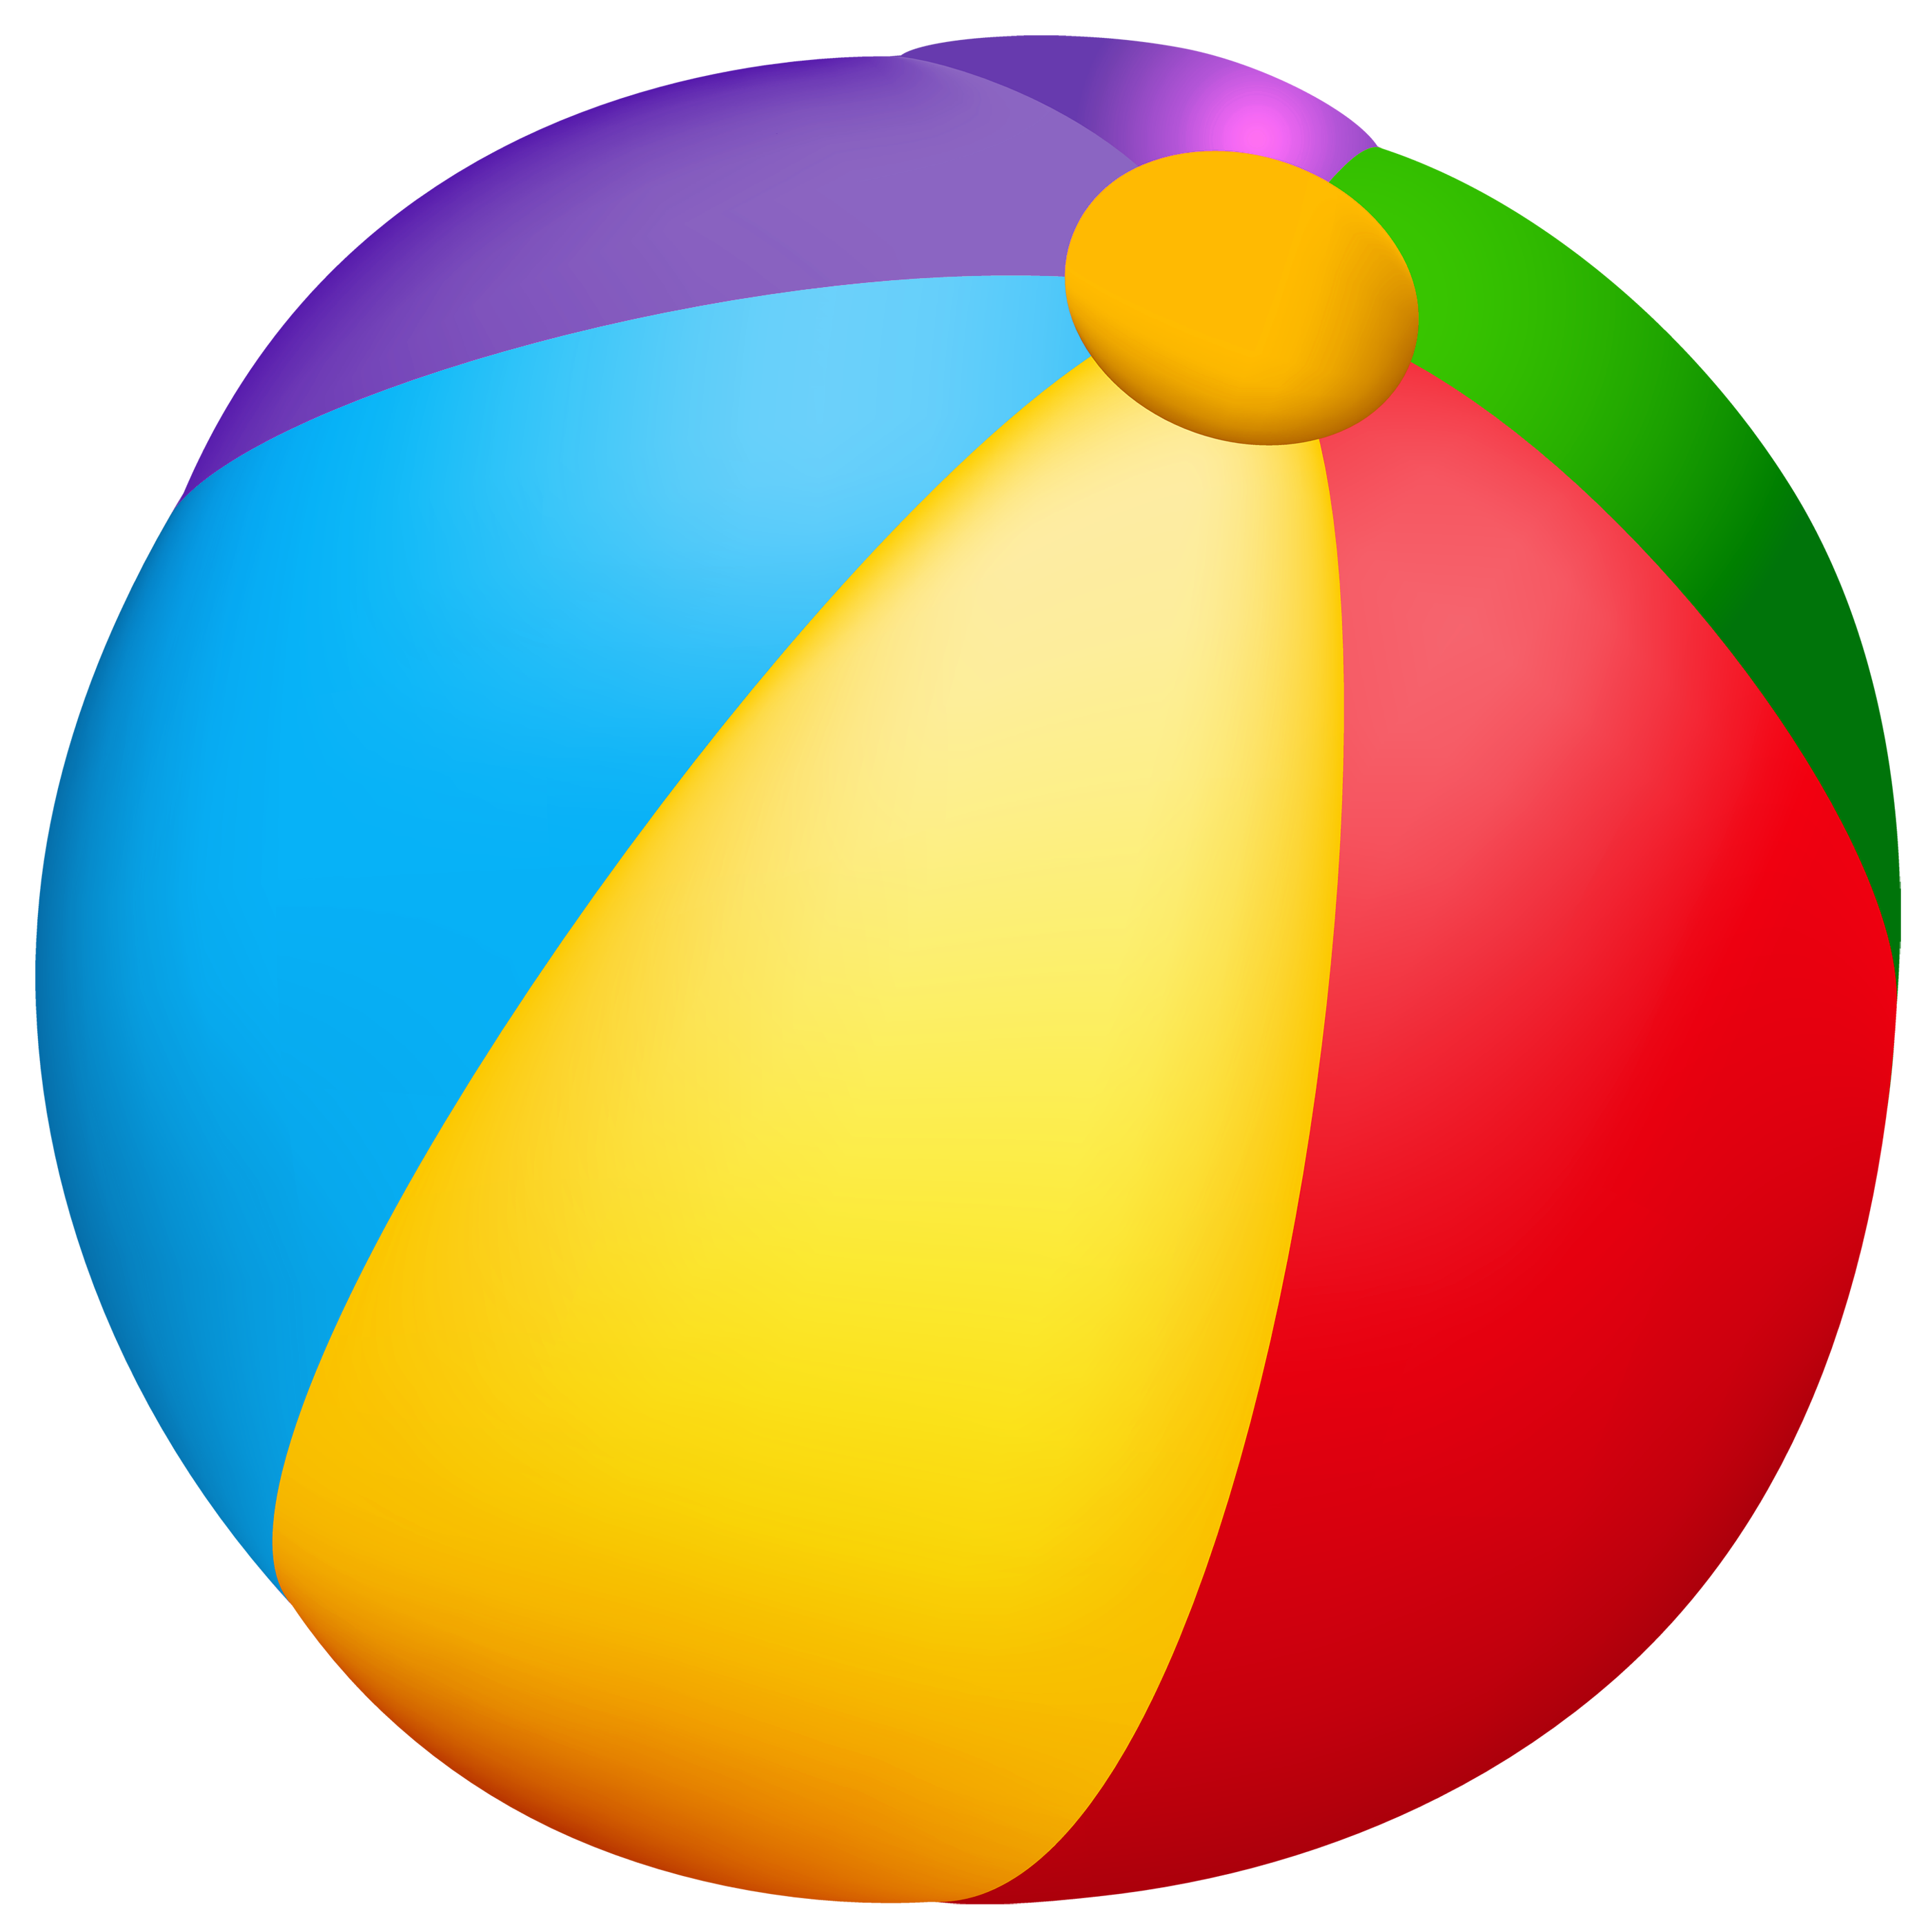 Ball clipart #2, Download drawings